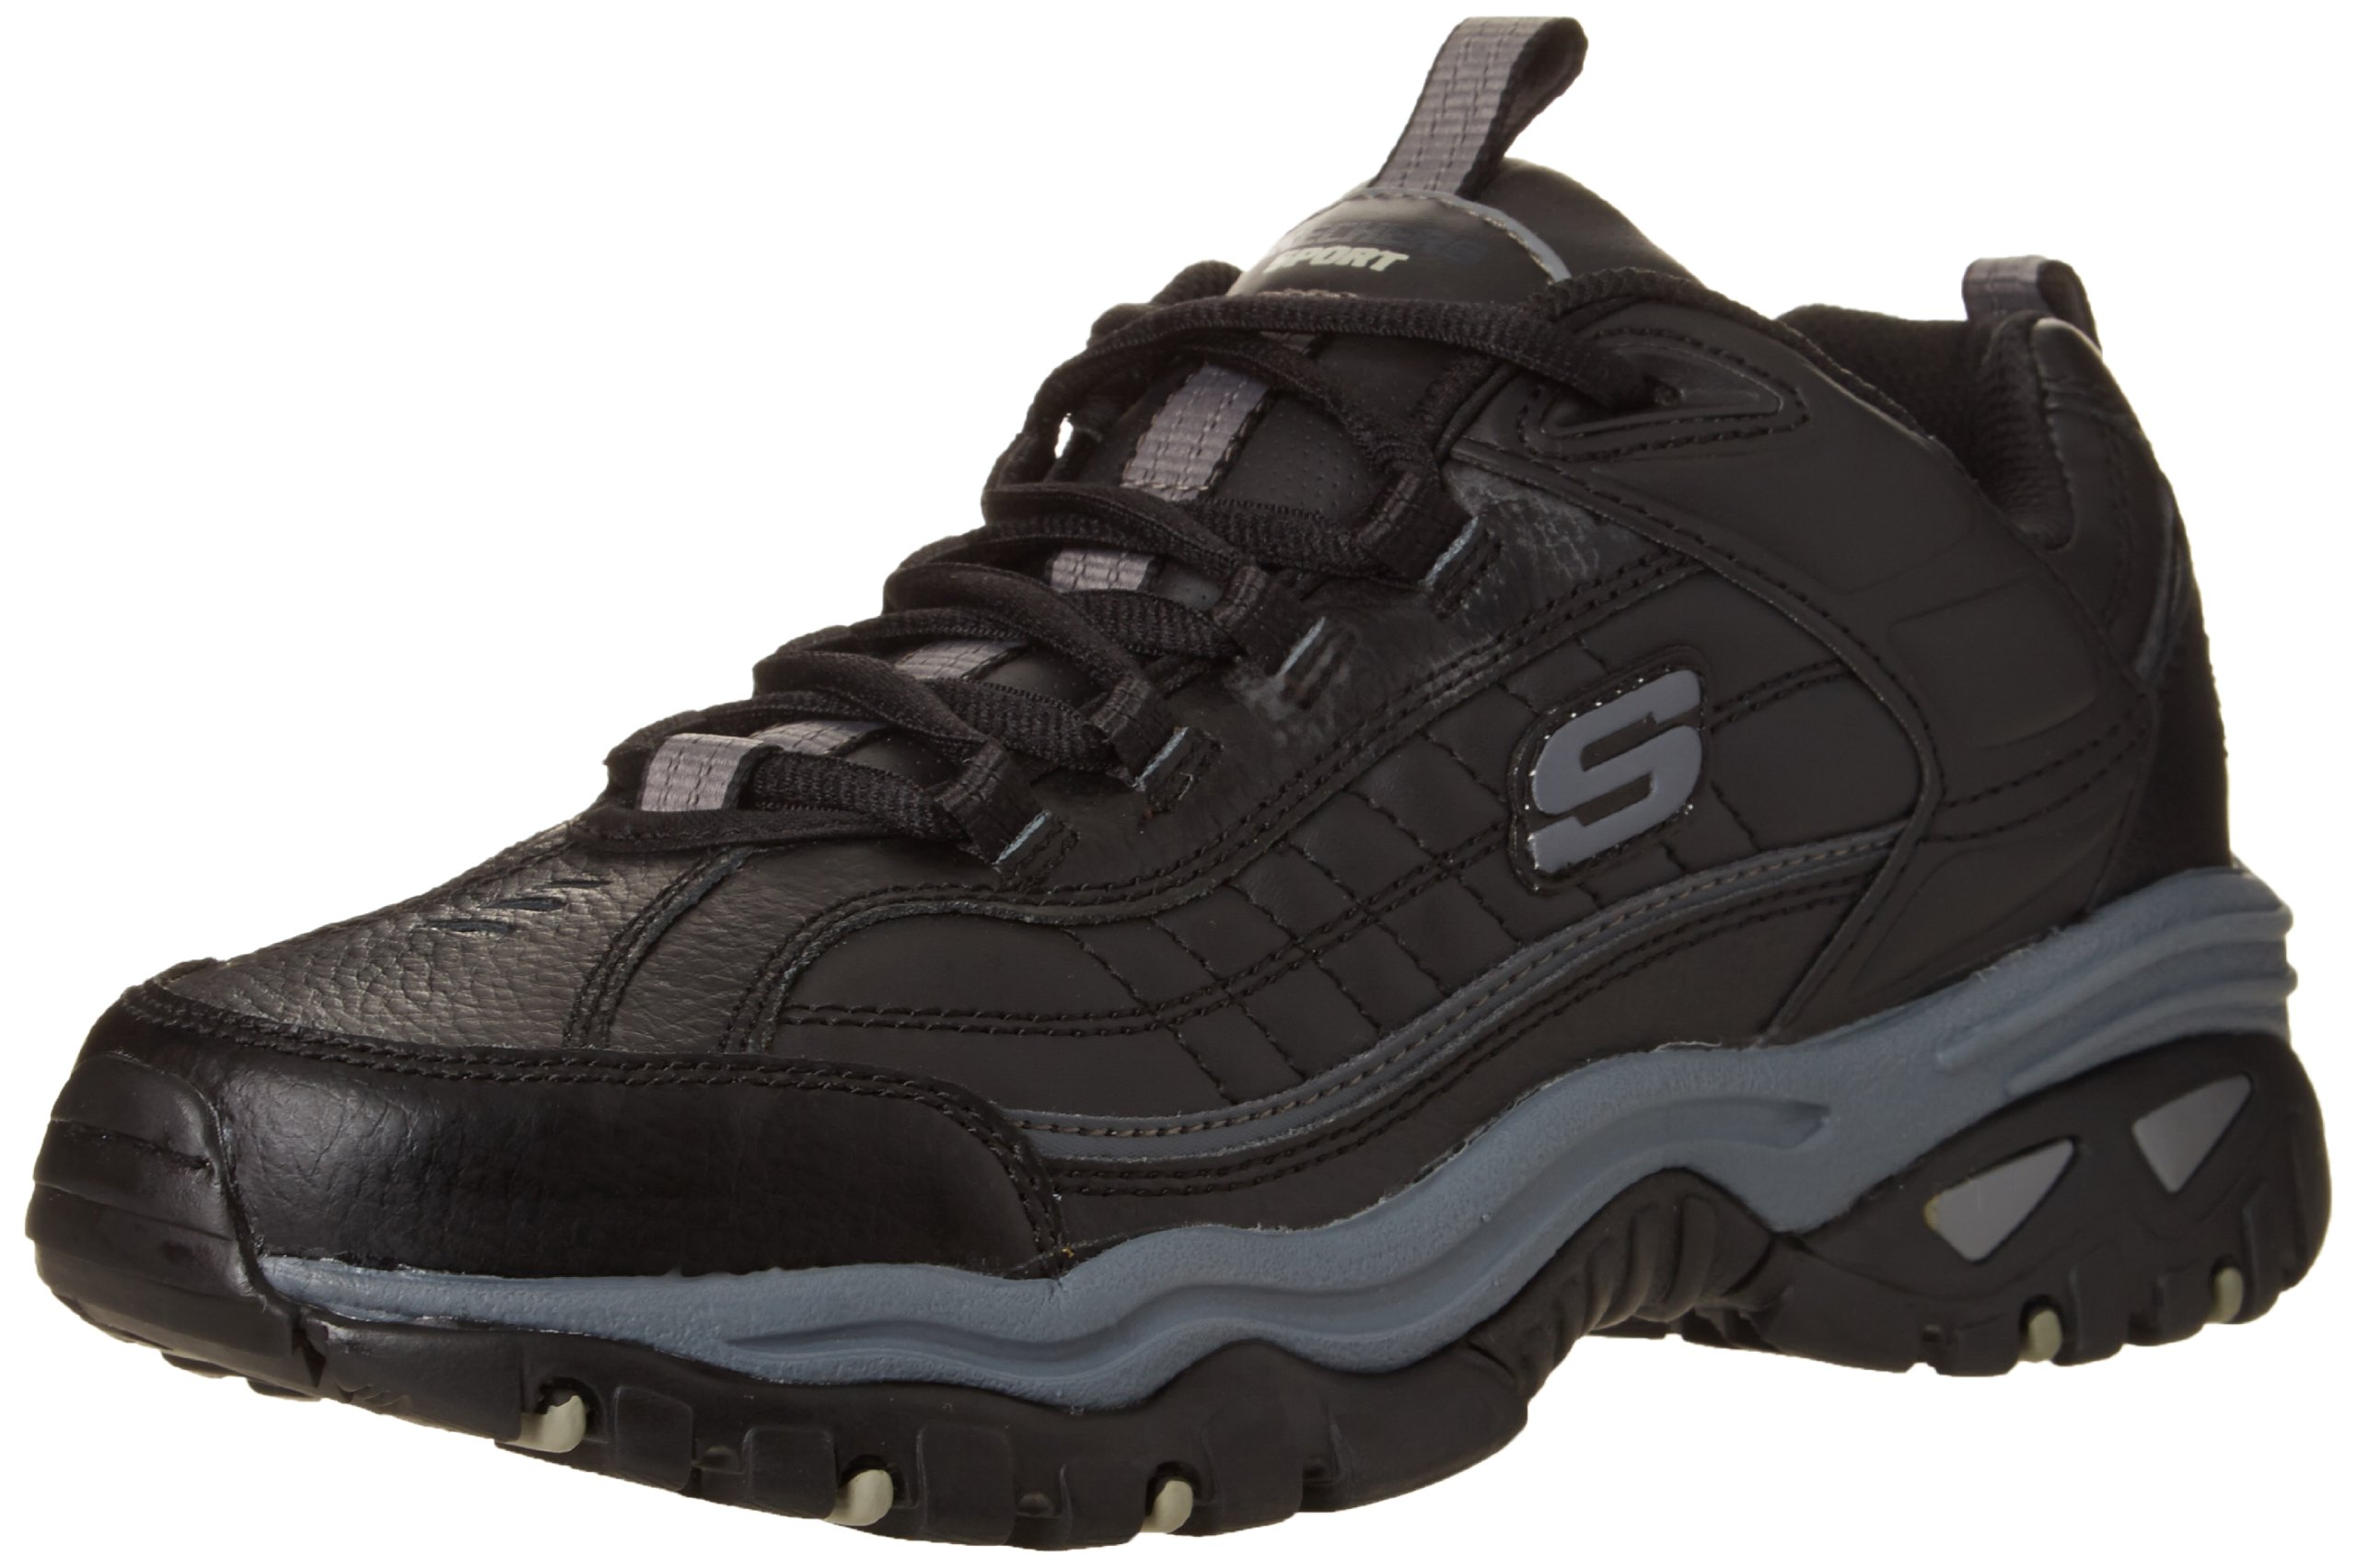 Best Work Shoes For A Cashier